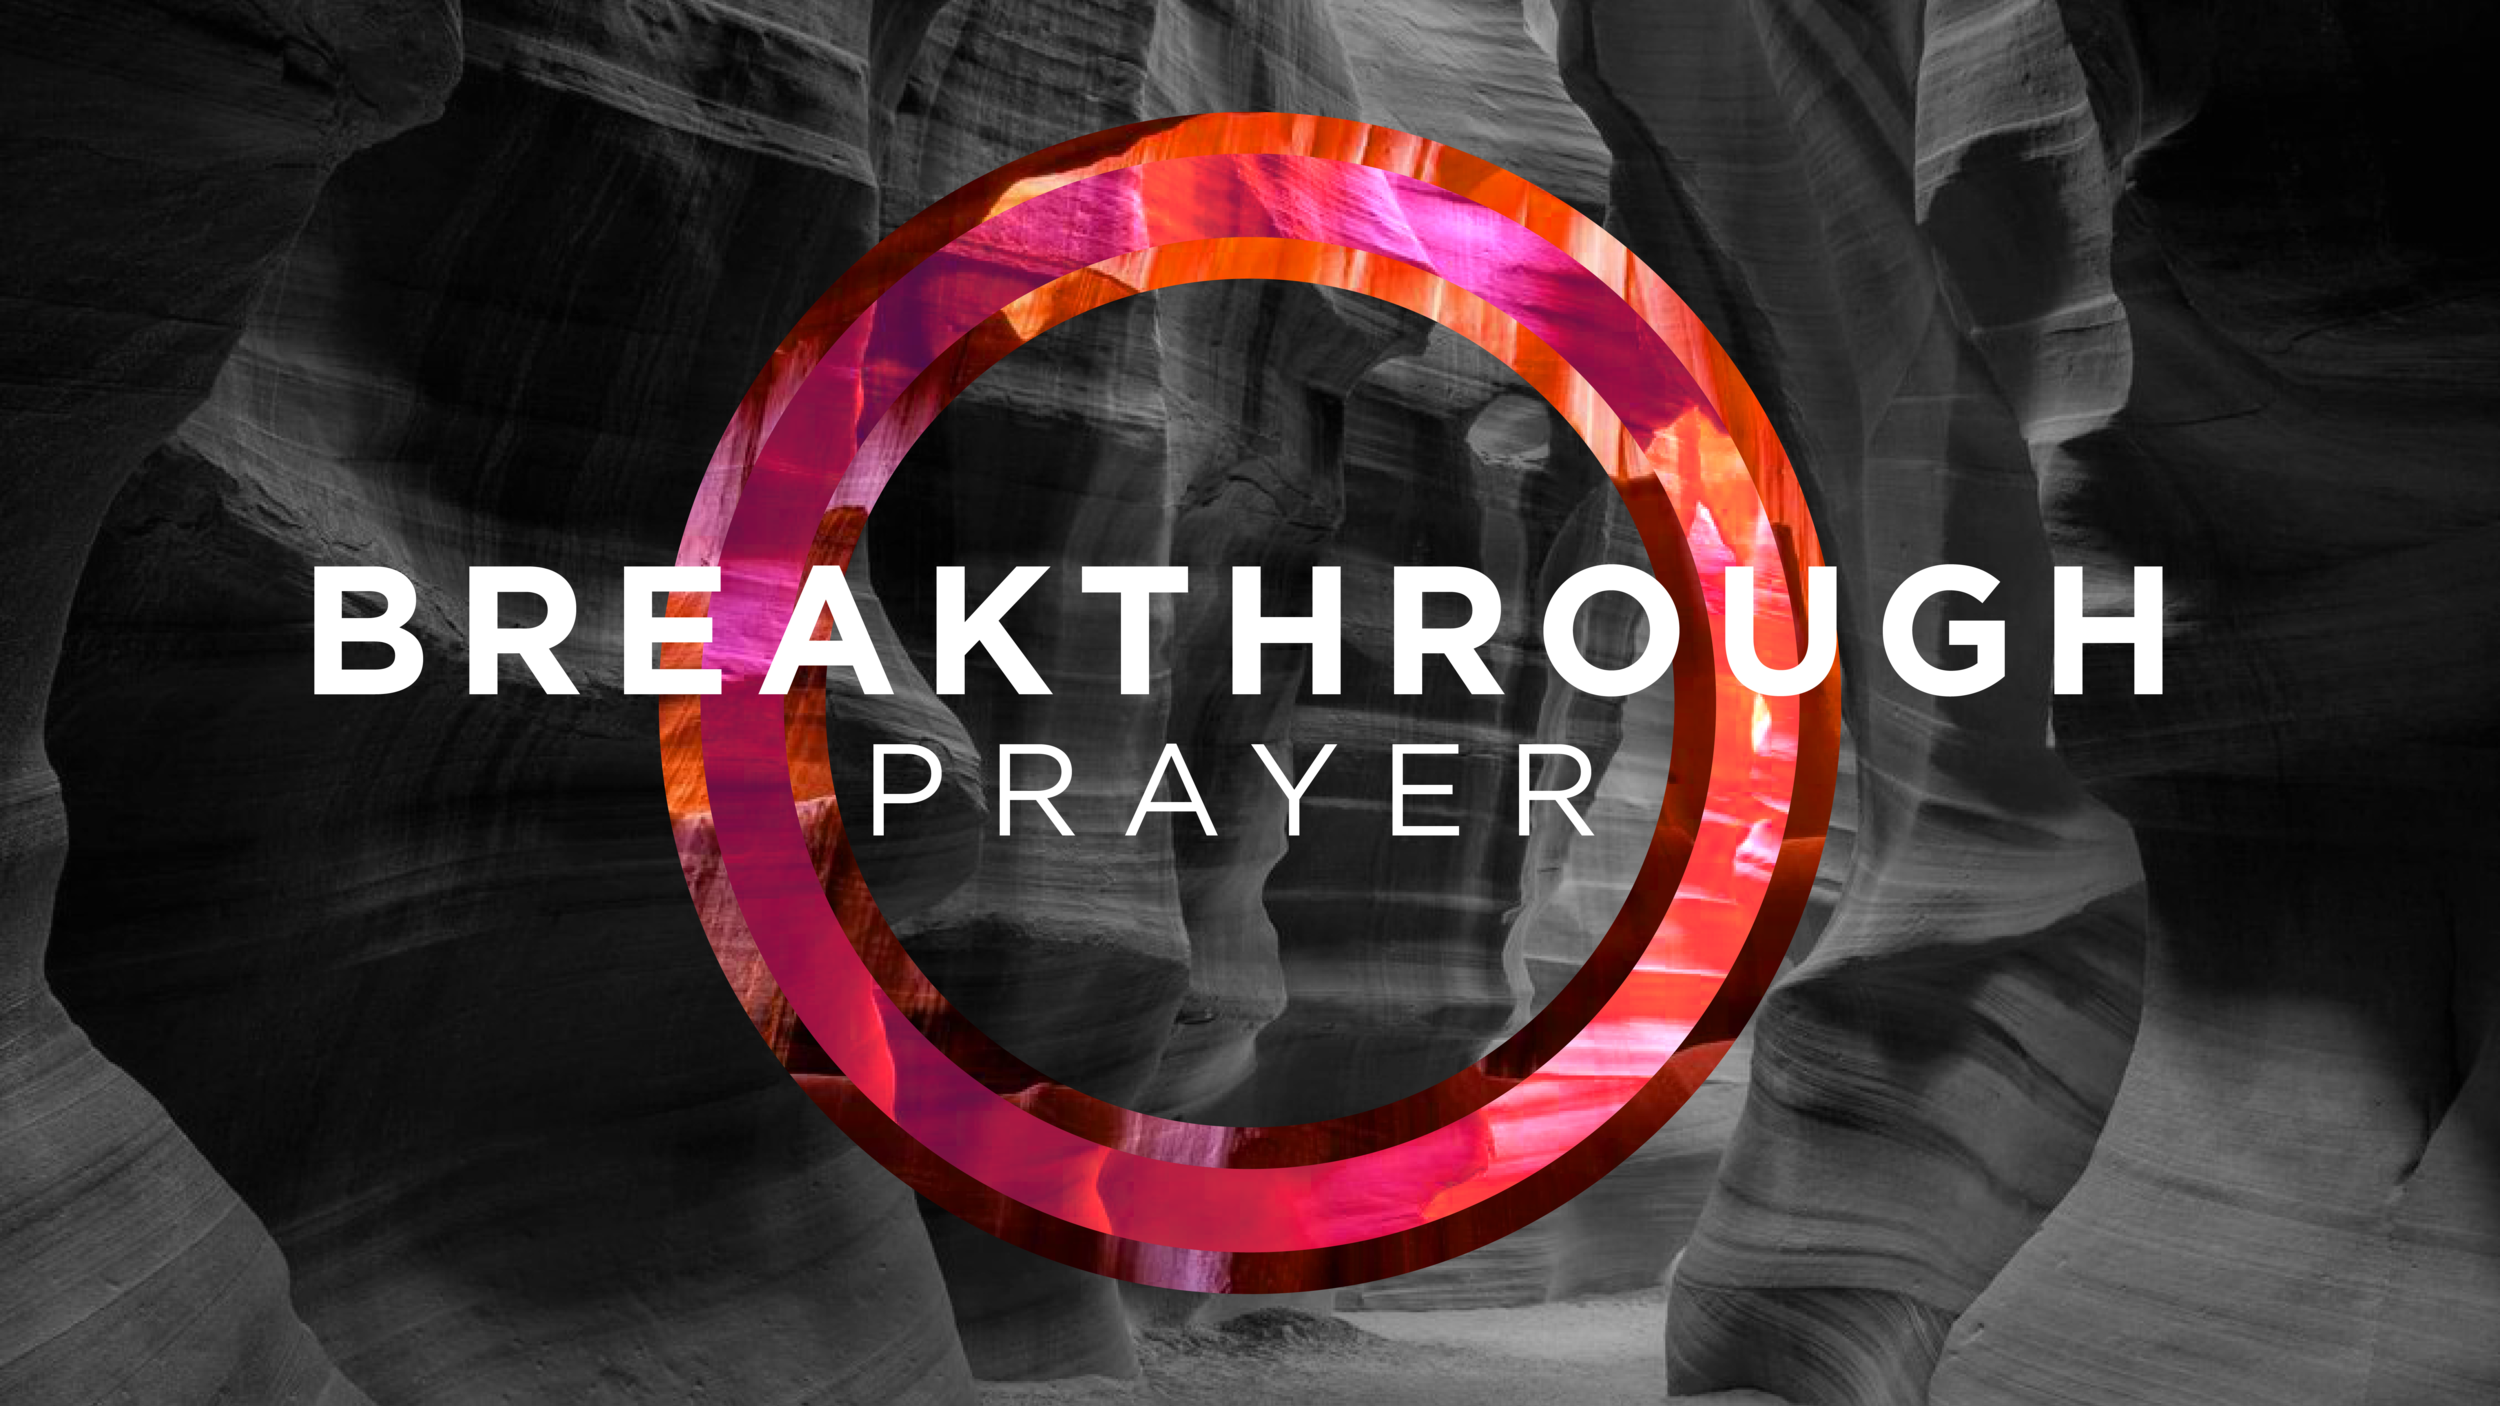 BreakthroughPrayer-01.png